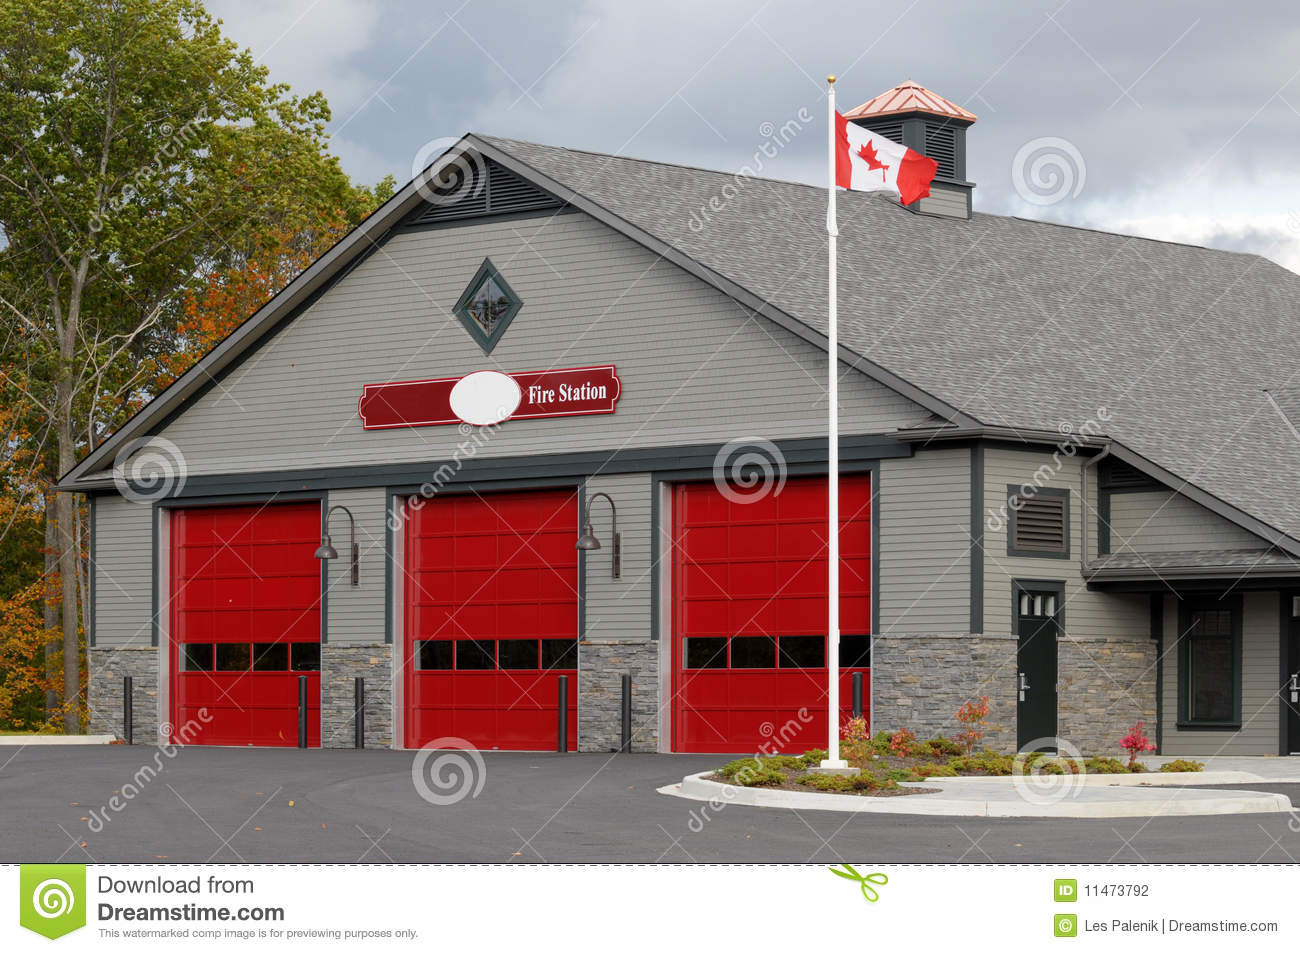 Fire Station Stock Photography - Image: 11473792